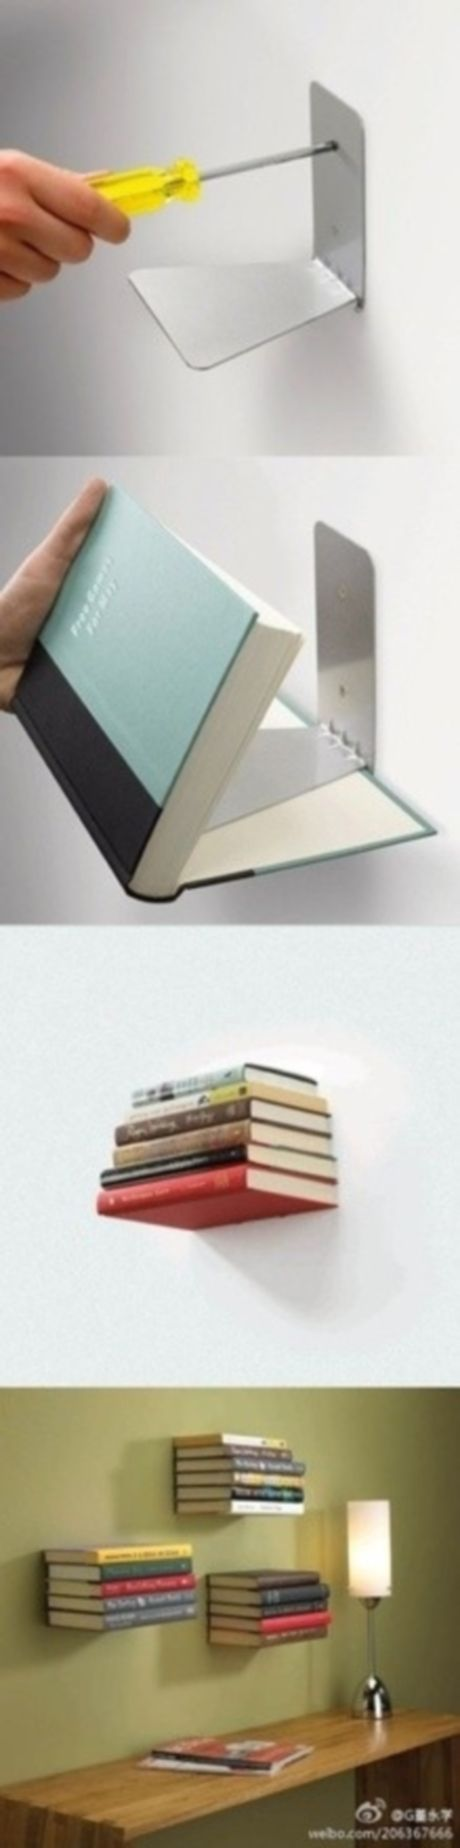 So simple even I could possibly ... get someone in my family to do it for me.  Use book ends to make an invisible bookshelf! Woah...insane!!